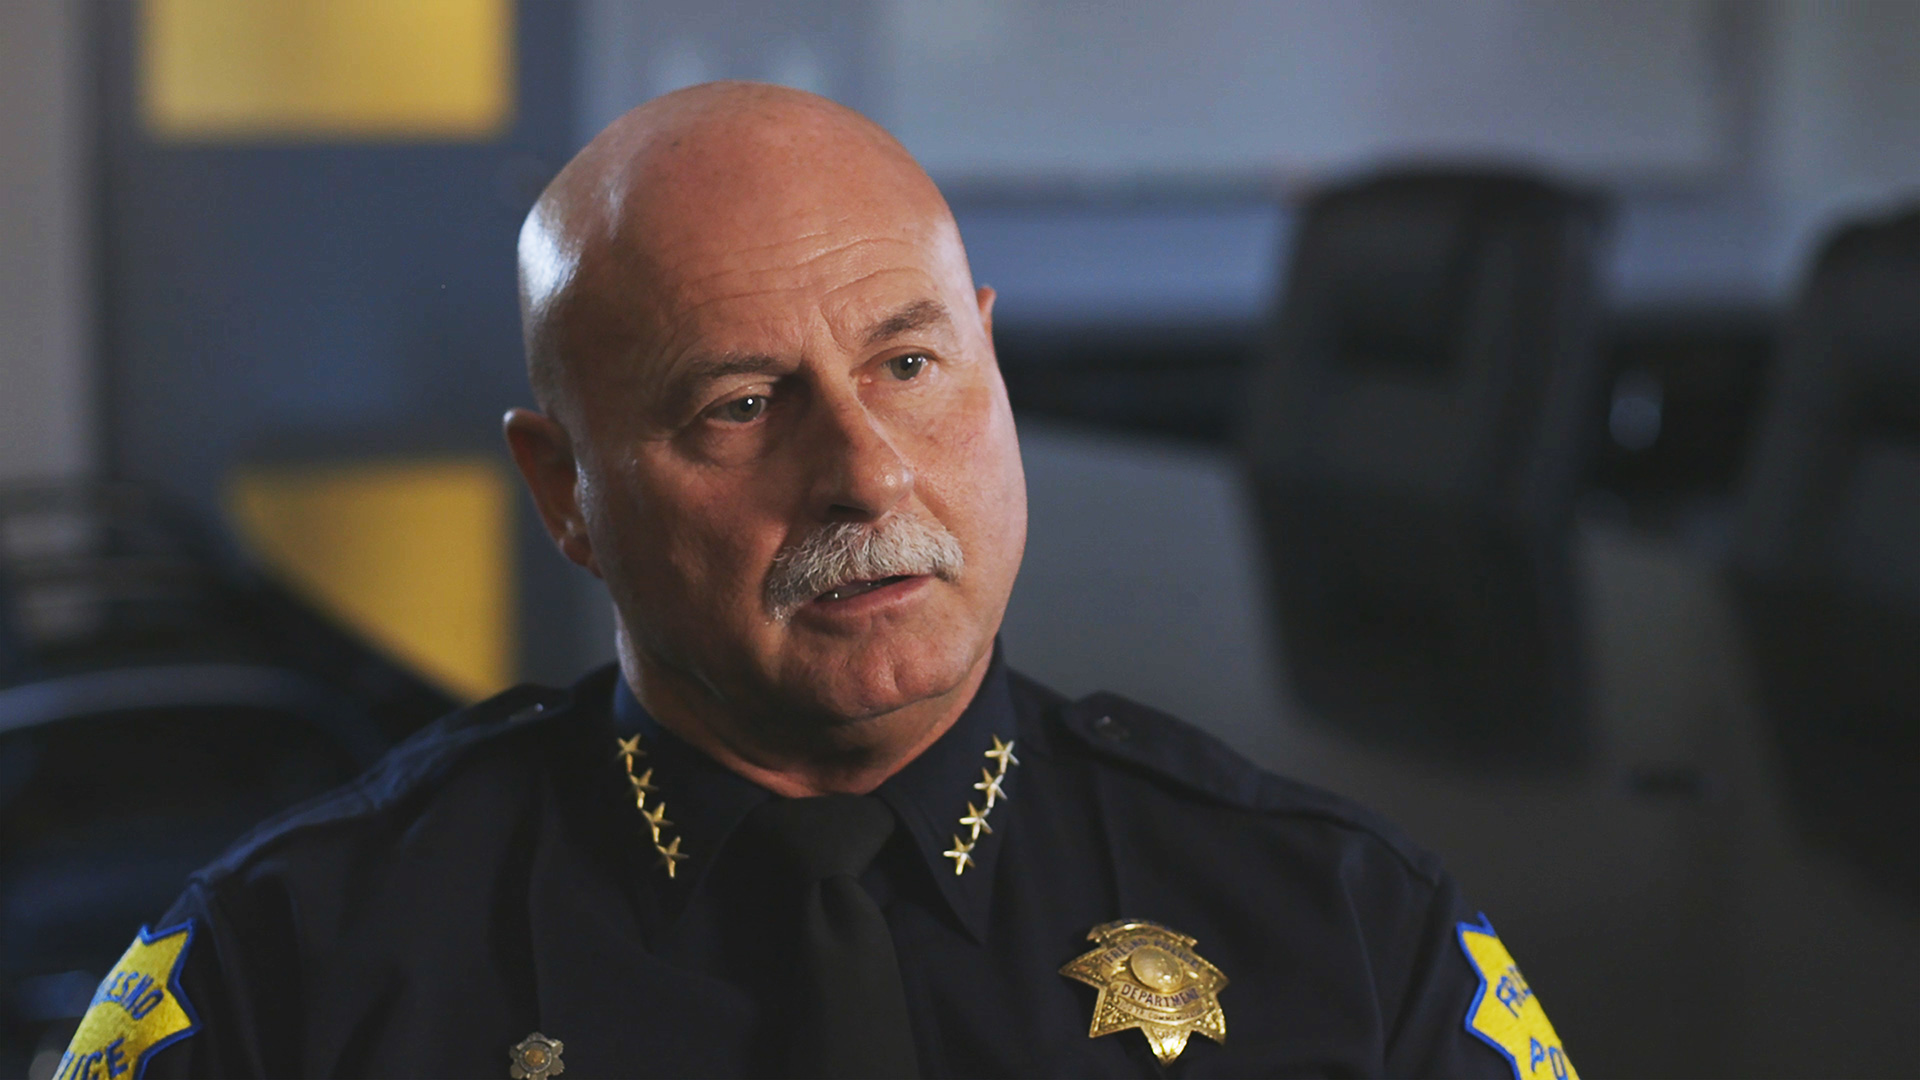 The Chief The Remarkable Sometimes Shocking Career Of Fresno S Top Cop Kqed